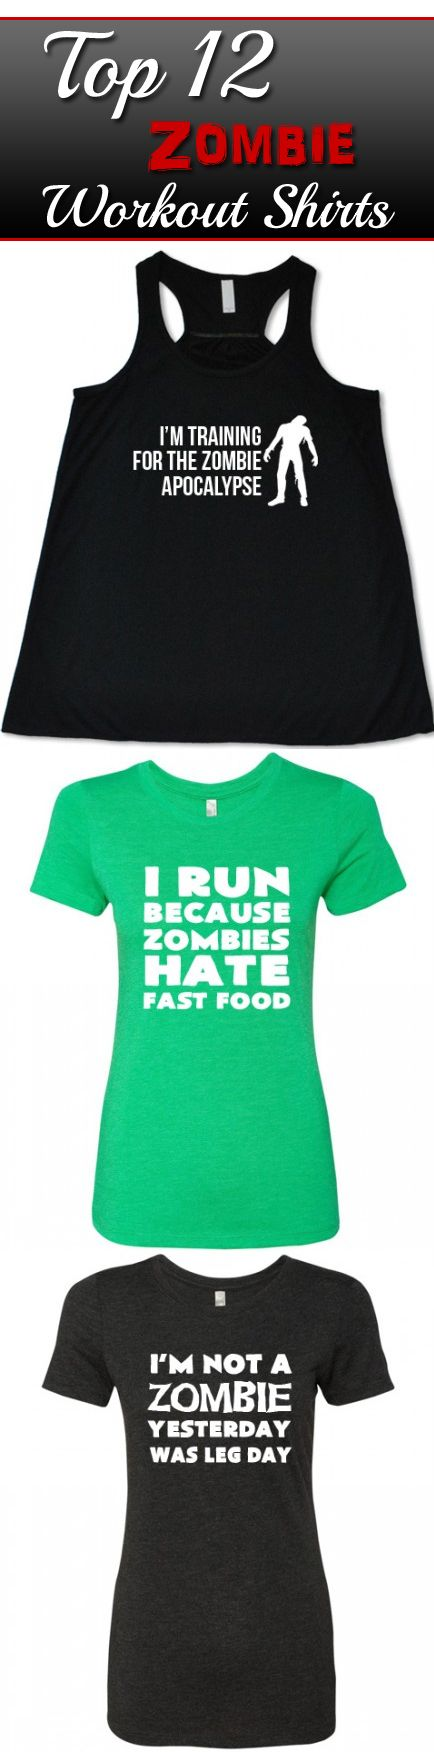 View All The Top 12 Zombie Workout Shirts For Women - Running Shirt - Funny Zombie Running Tank Tops